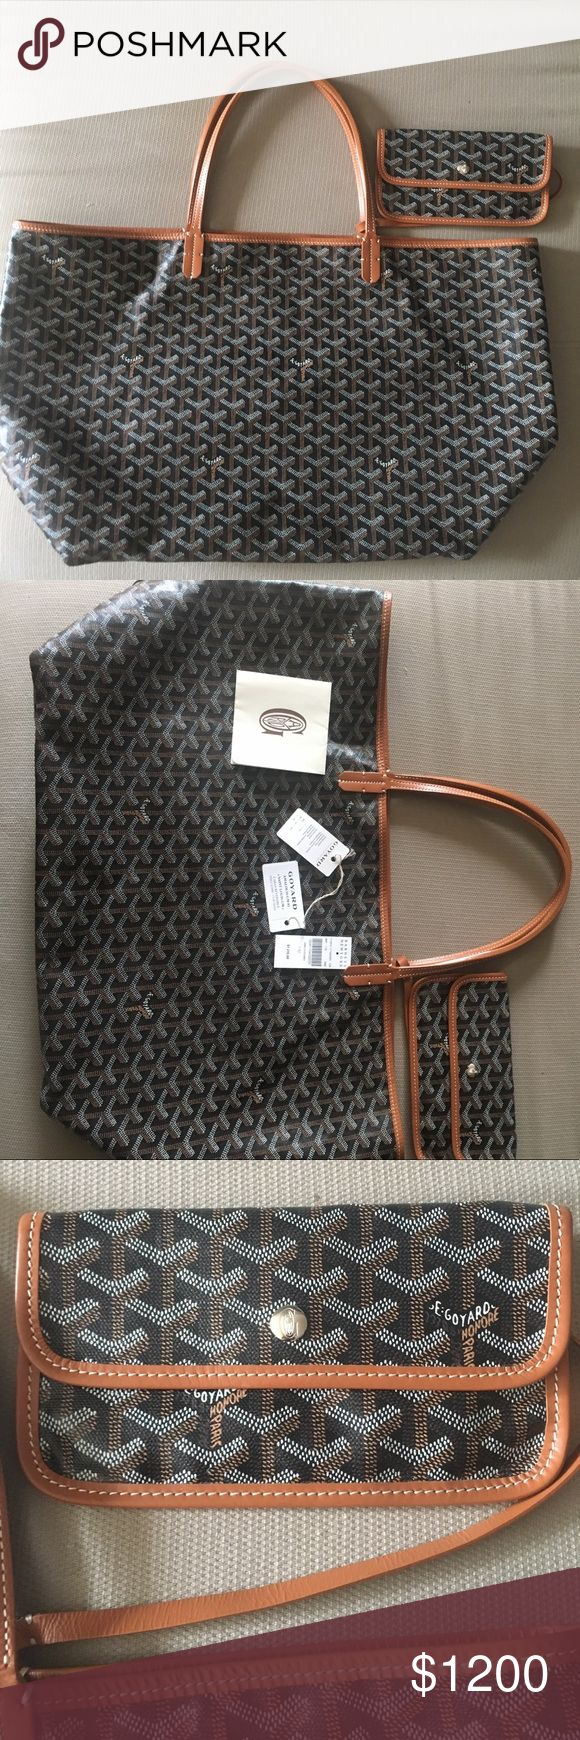 Authentic Goyard St. Louis GM in Black&Tan Authentic Large Goyard St.Louis GM Tote in Black and Tan. Pics include the original tags and receipt from Barneys NY with price.  In great condition but I am selling bc I have way too many bags sitting in my closet. Goyard Bags Totes